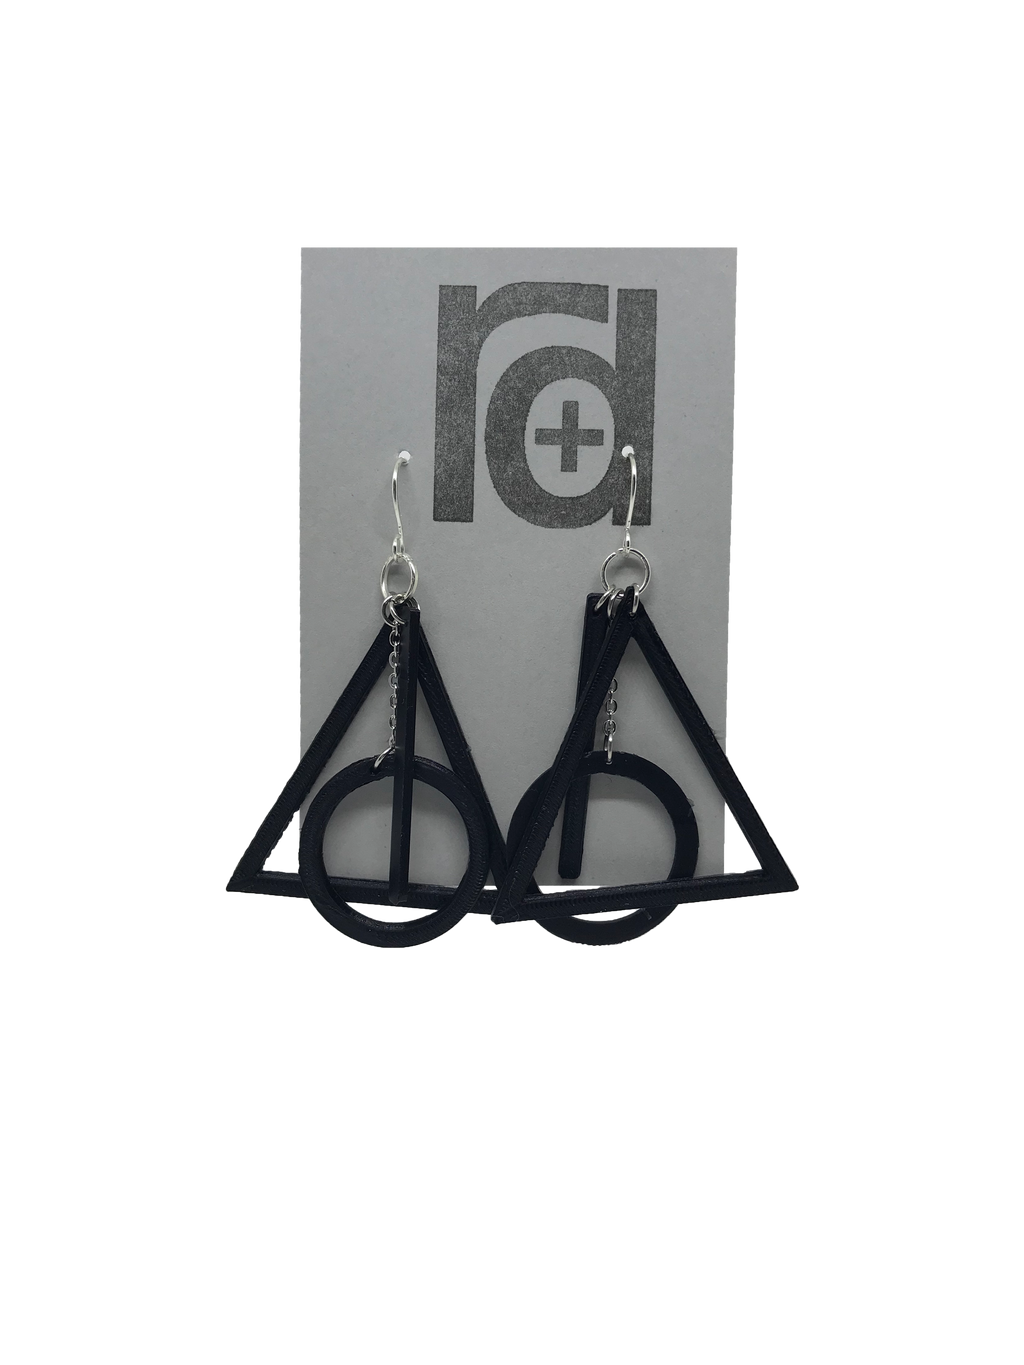 On a grey earring card are two R+D earrings. They are based off of a symbol from a popular book series. There is a black triangle, a circle, and a line that all move independently but come together to make one the master of death.